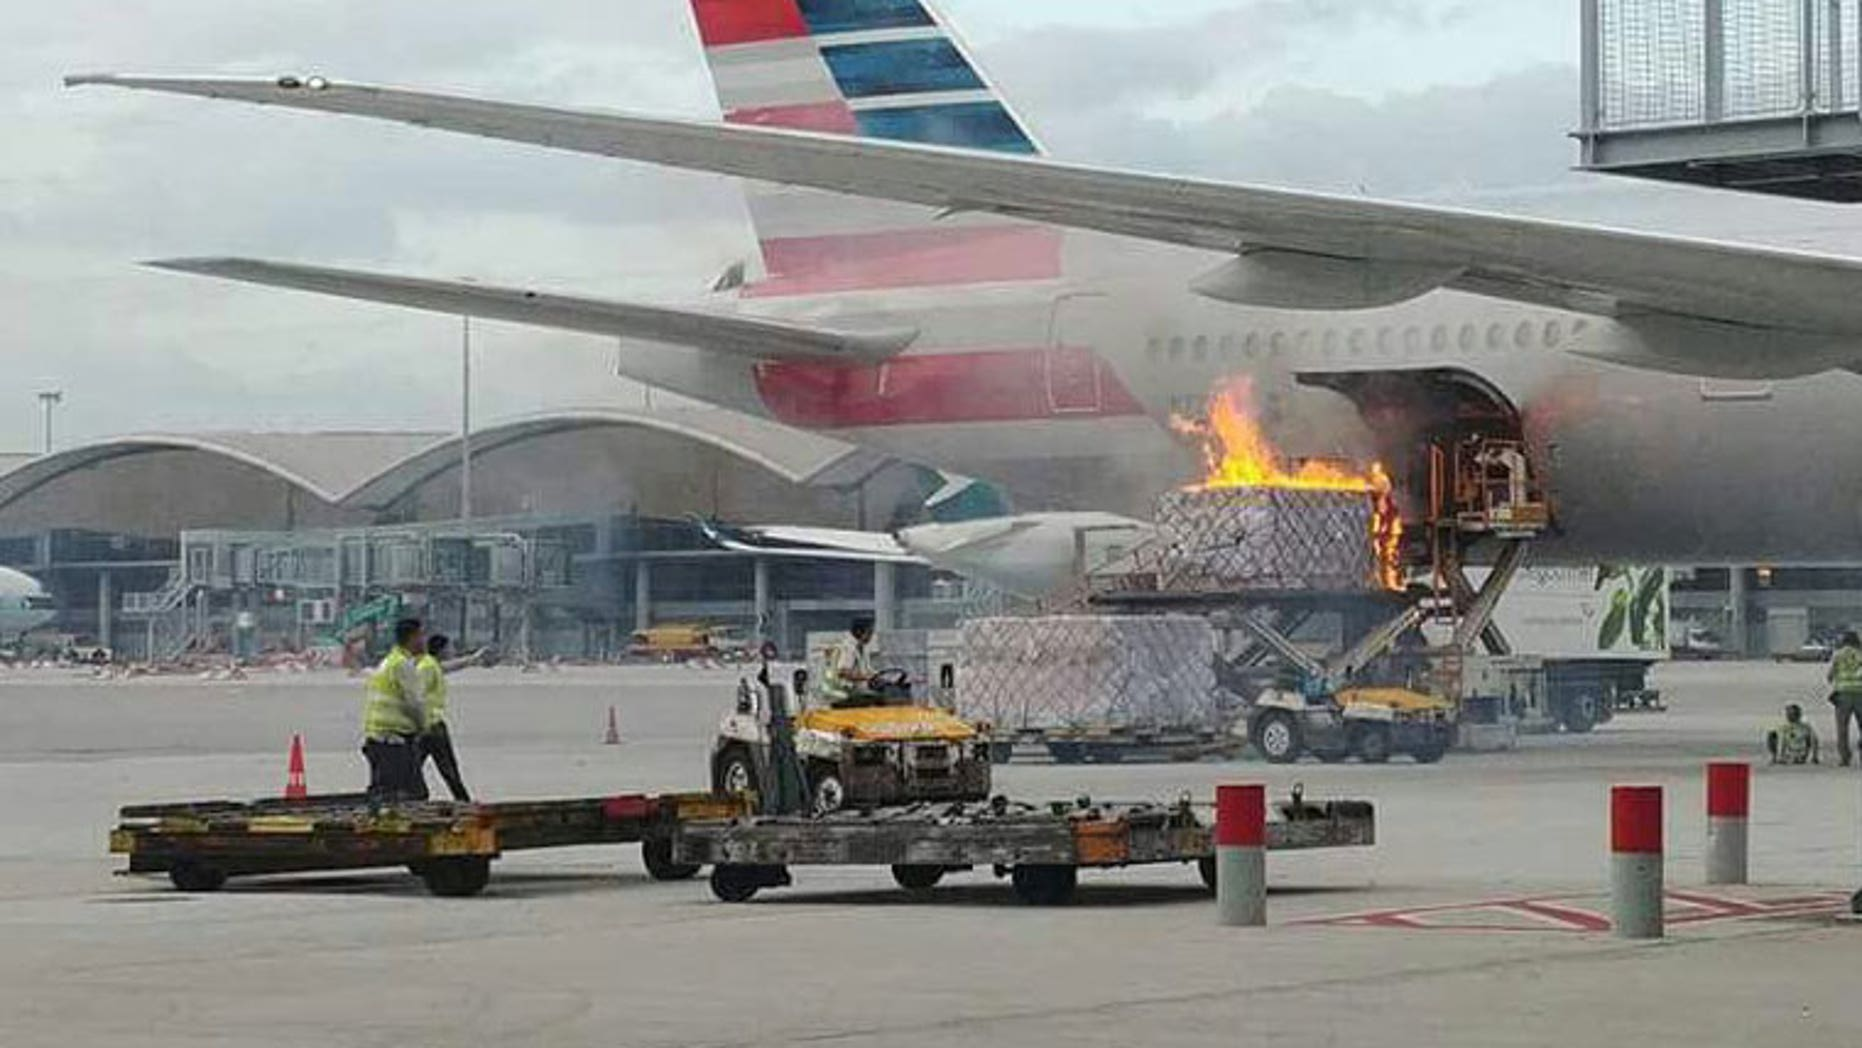 A piece of loading equipment and its cargo caught fire at Hong Kong International Airport on Monday.